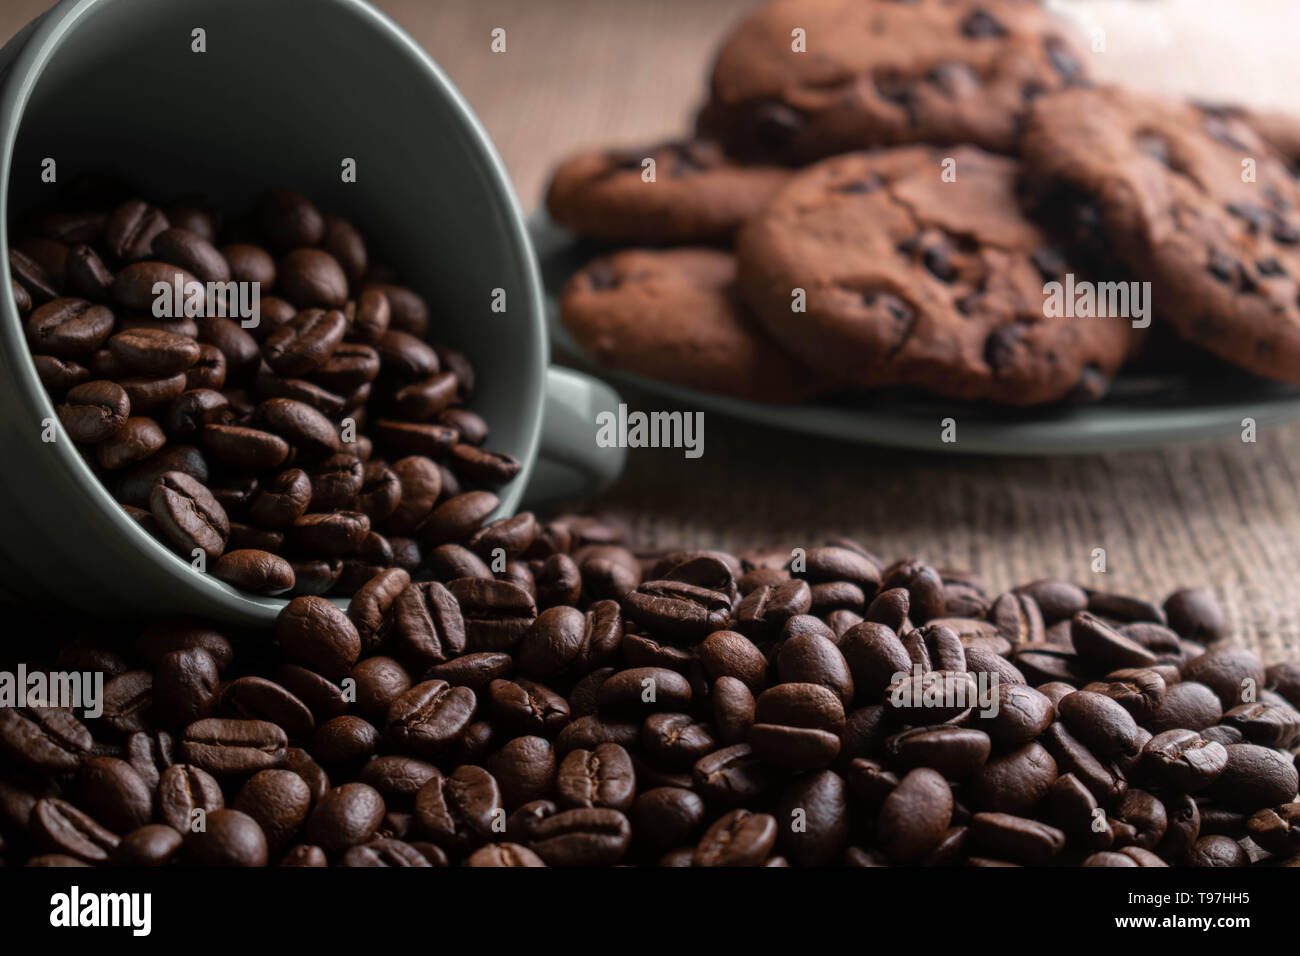 coffee beans crumbled with a cup which is worth on light burlap, in the background plate of cookies - Stock Image